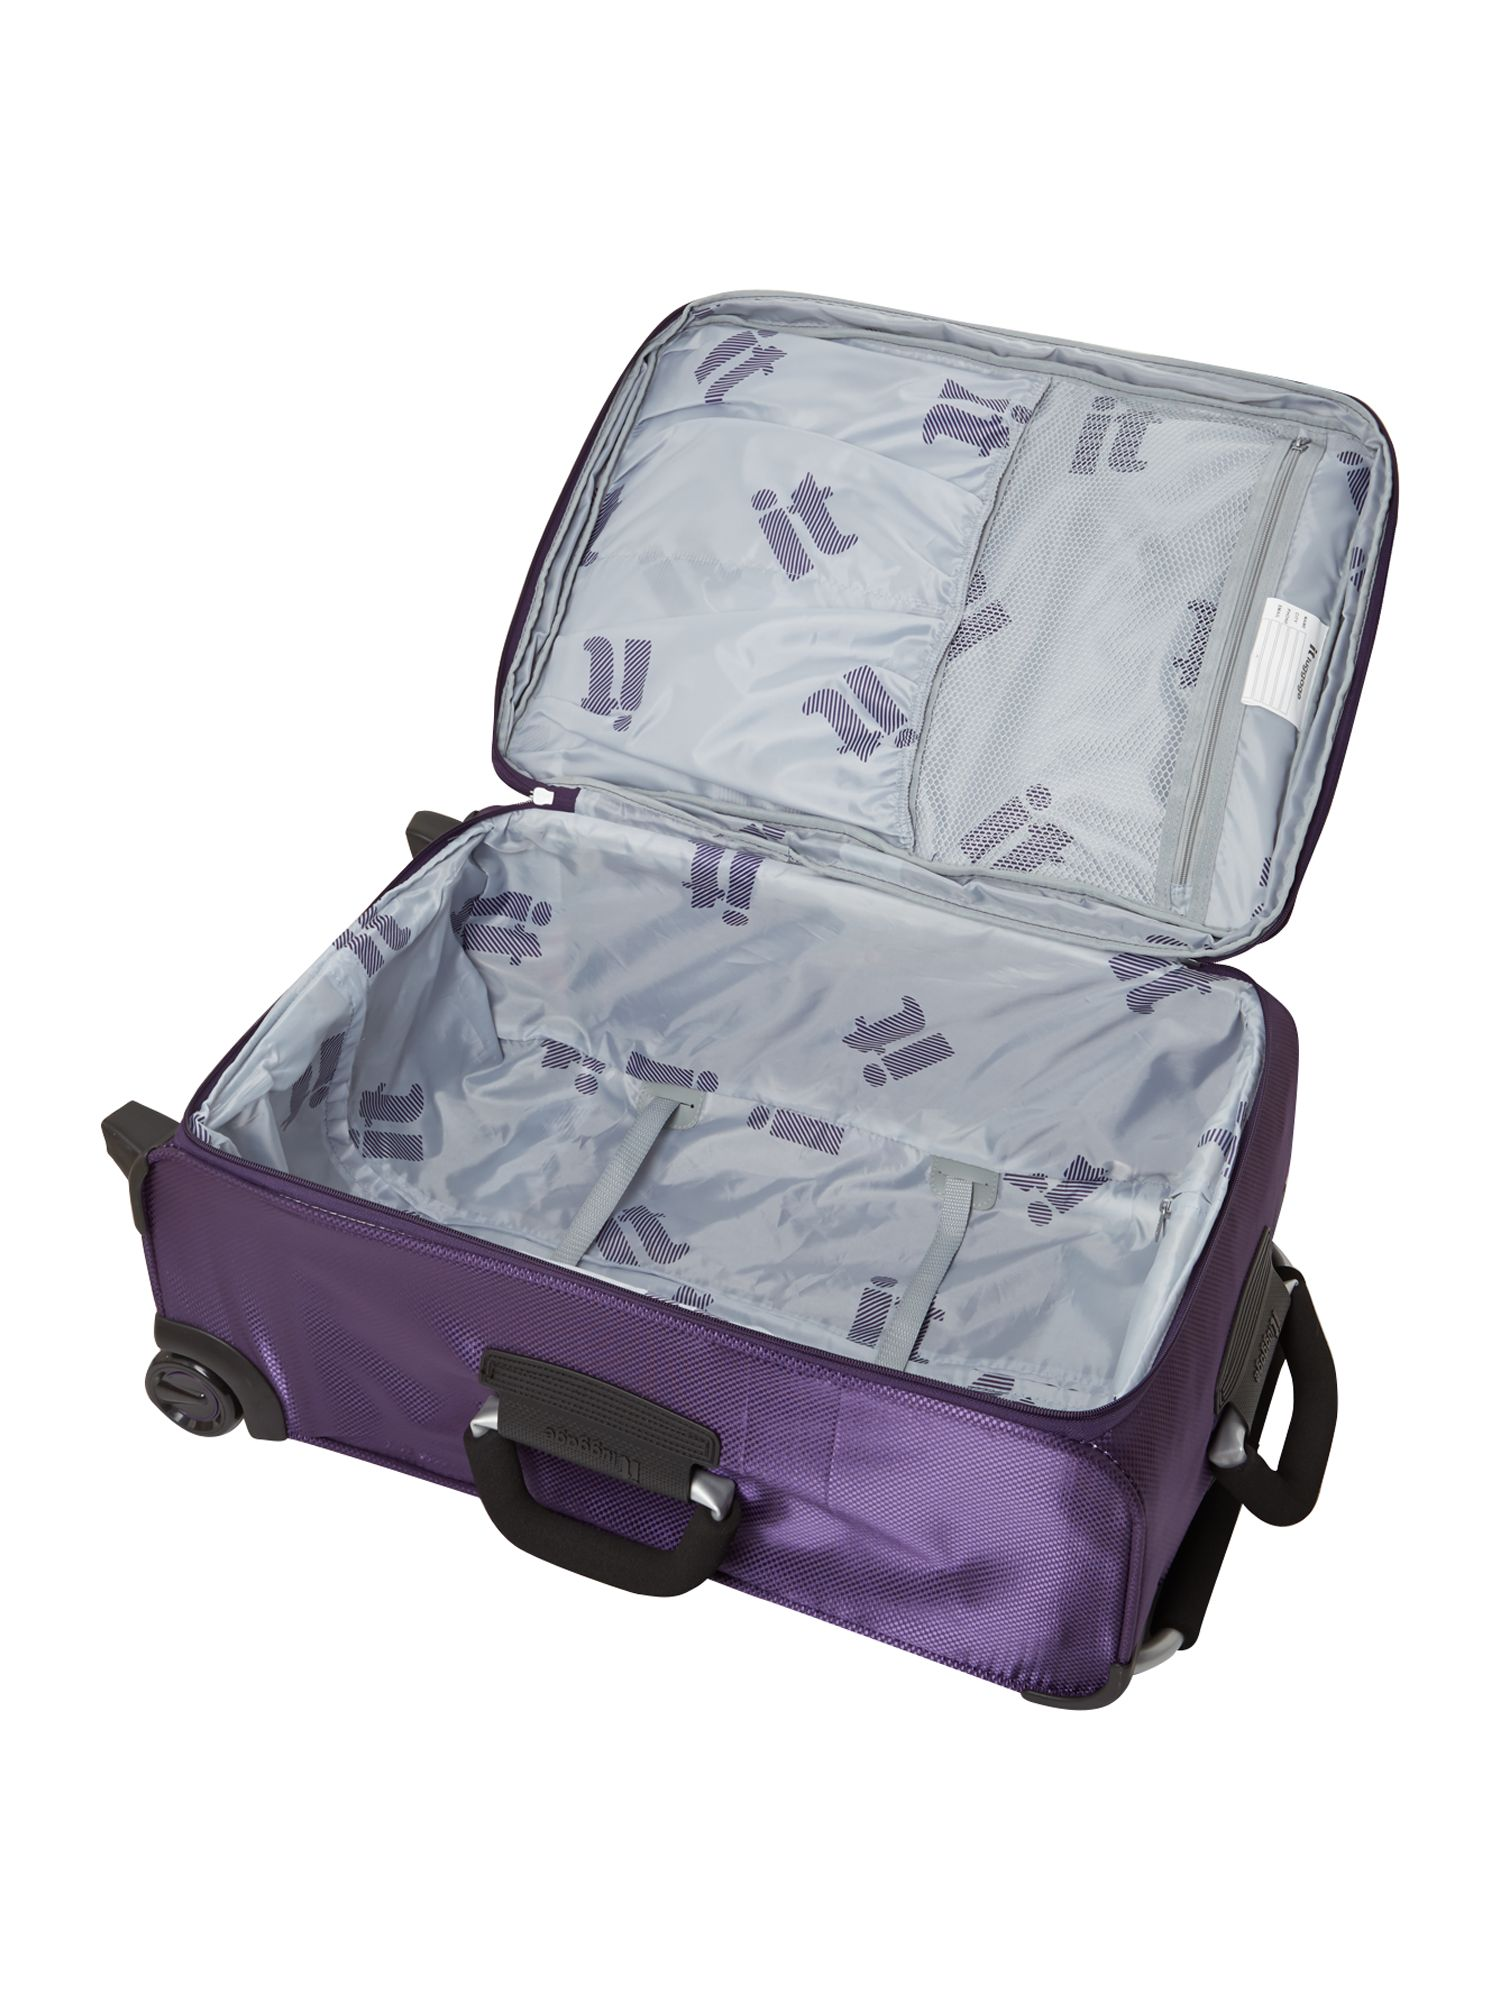 IT02 medium purple case